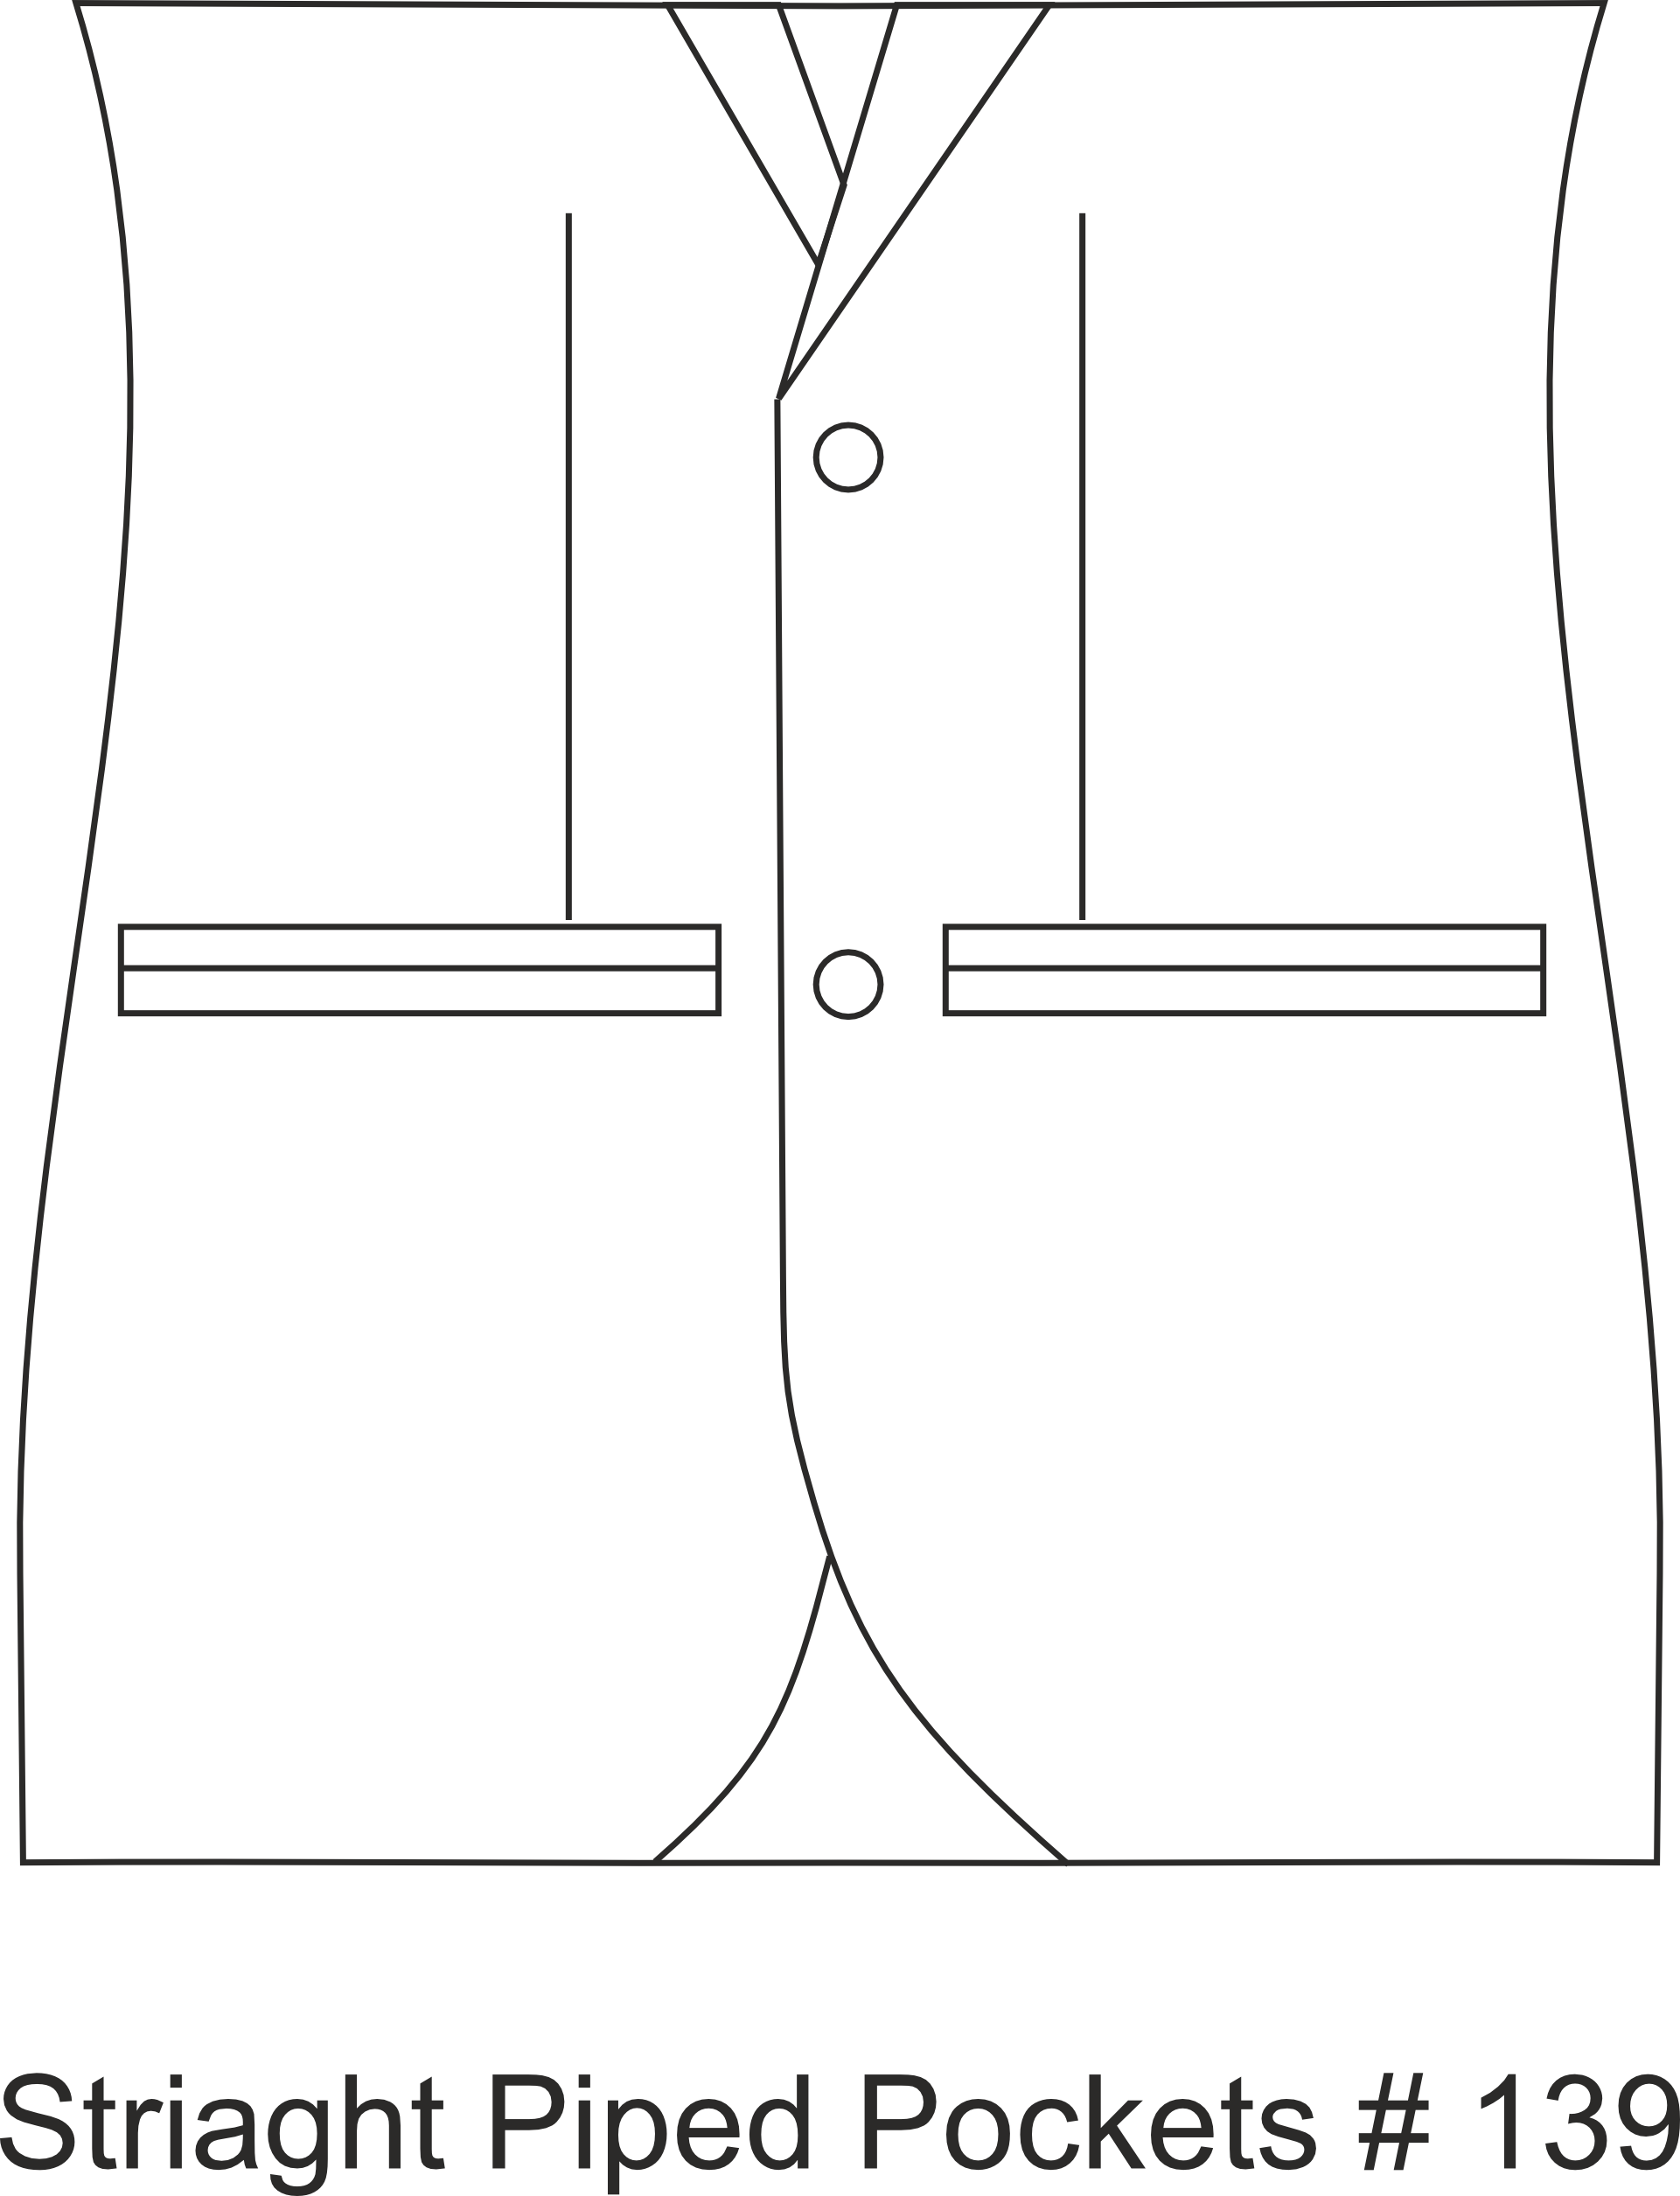 piped-pocket-straight